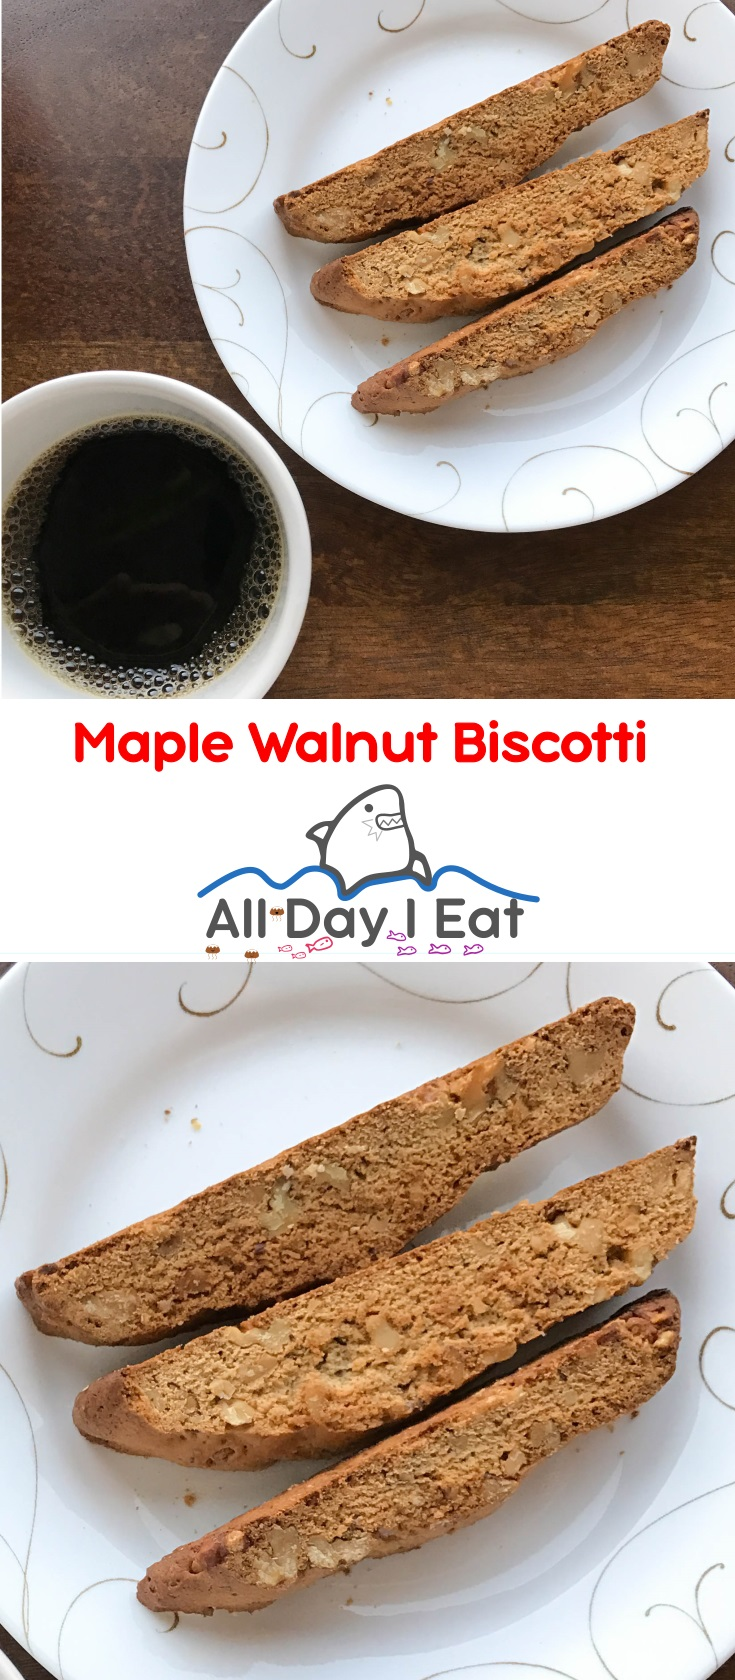 Maple Walnut Biscotti | www.alldayieat.com